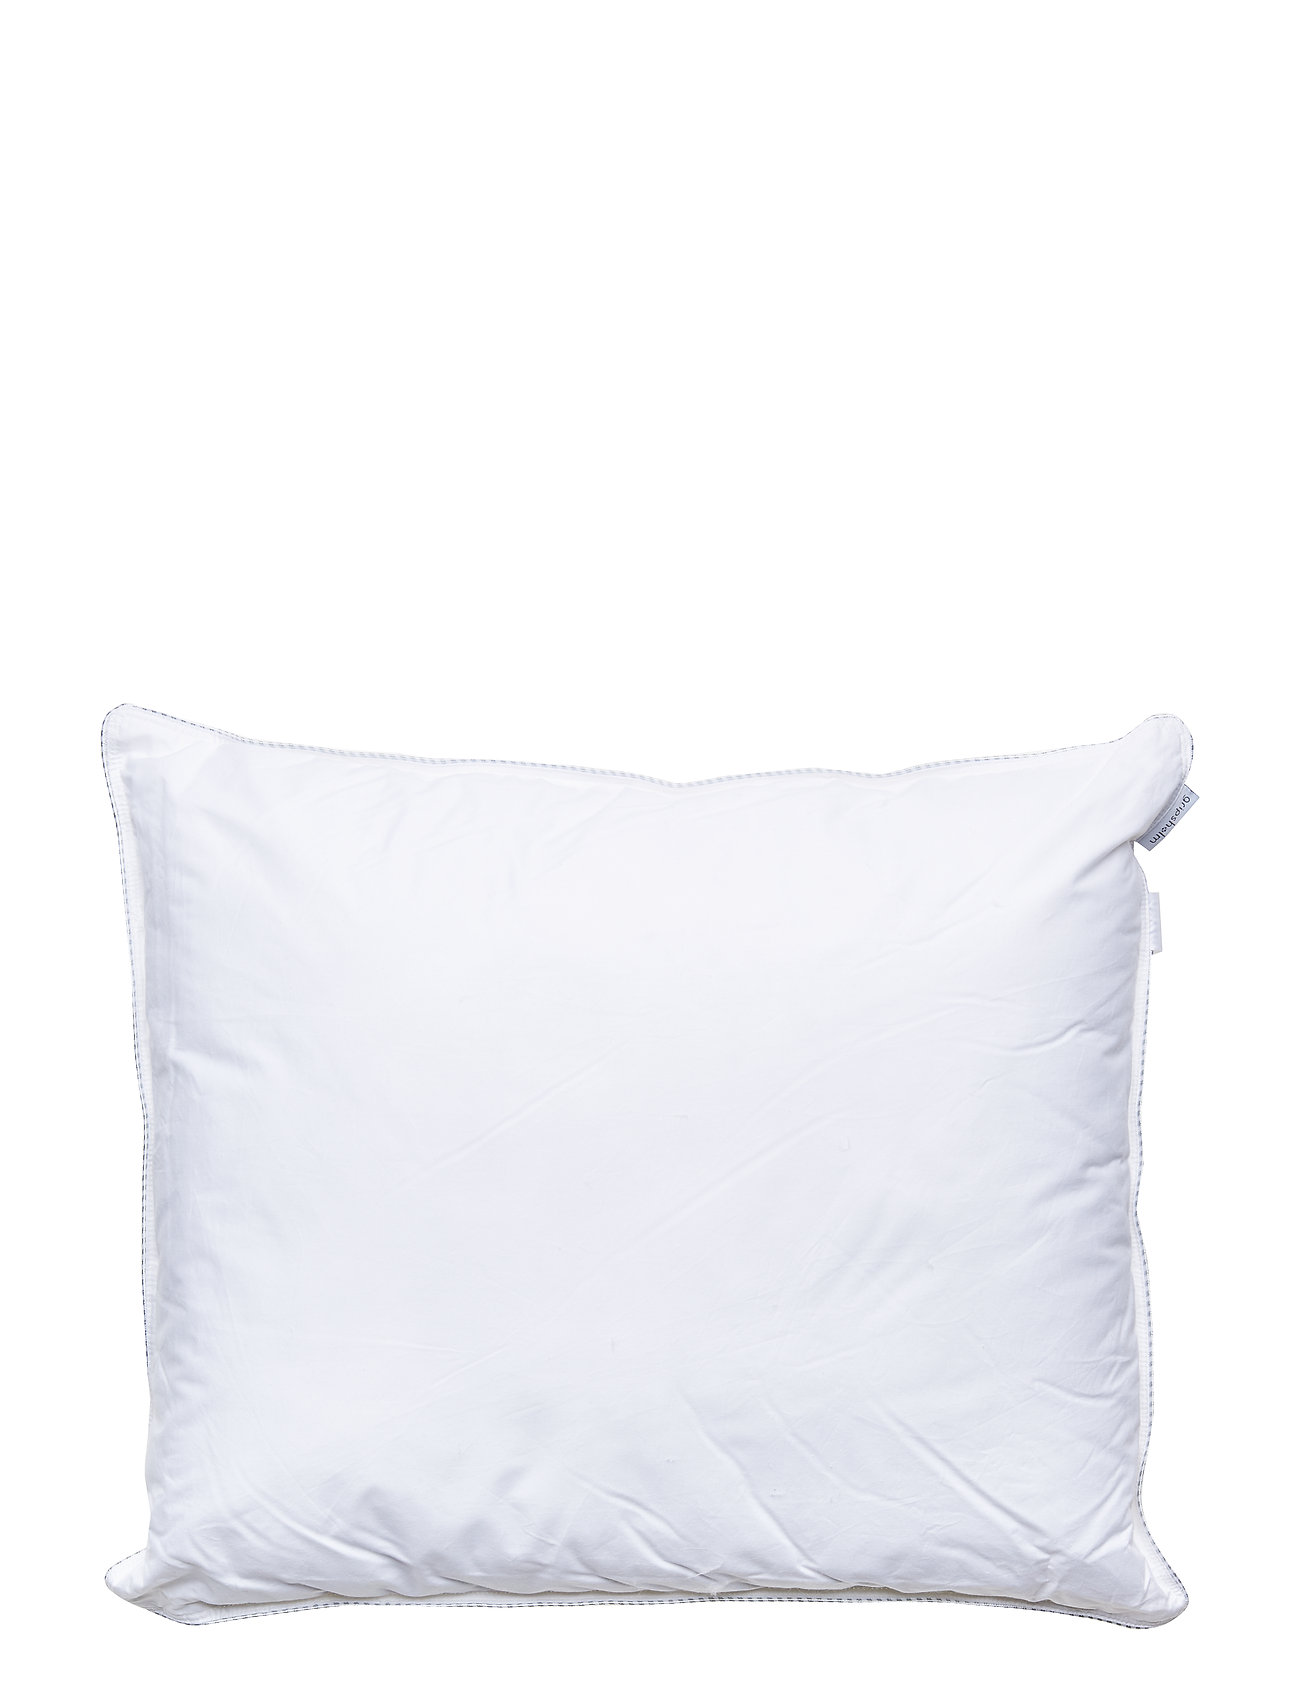 Gripsholm PILLOW NELSON LOW - WHITE